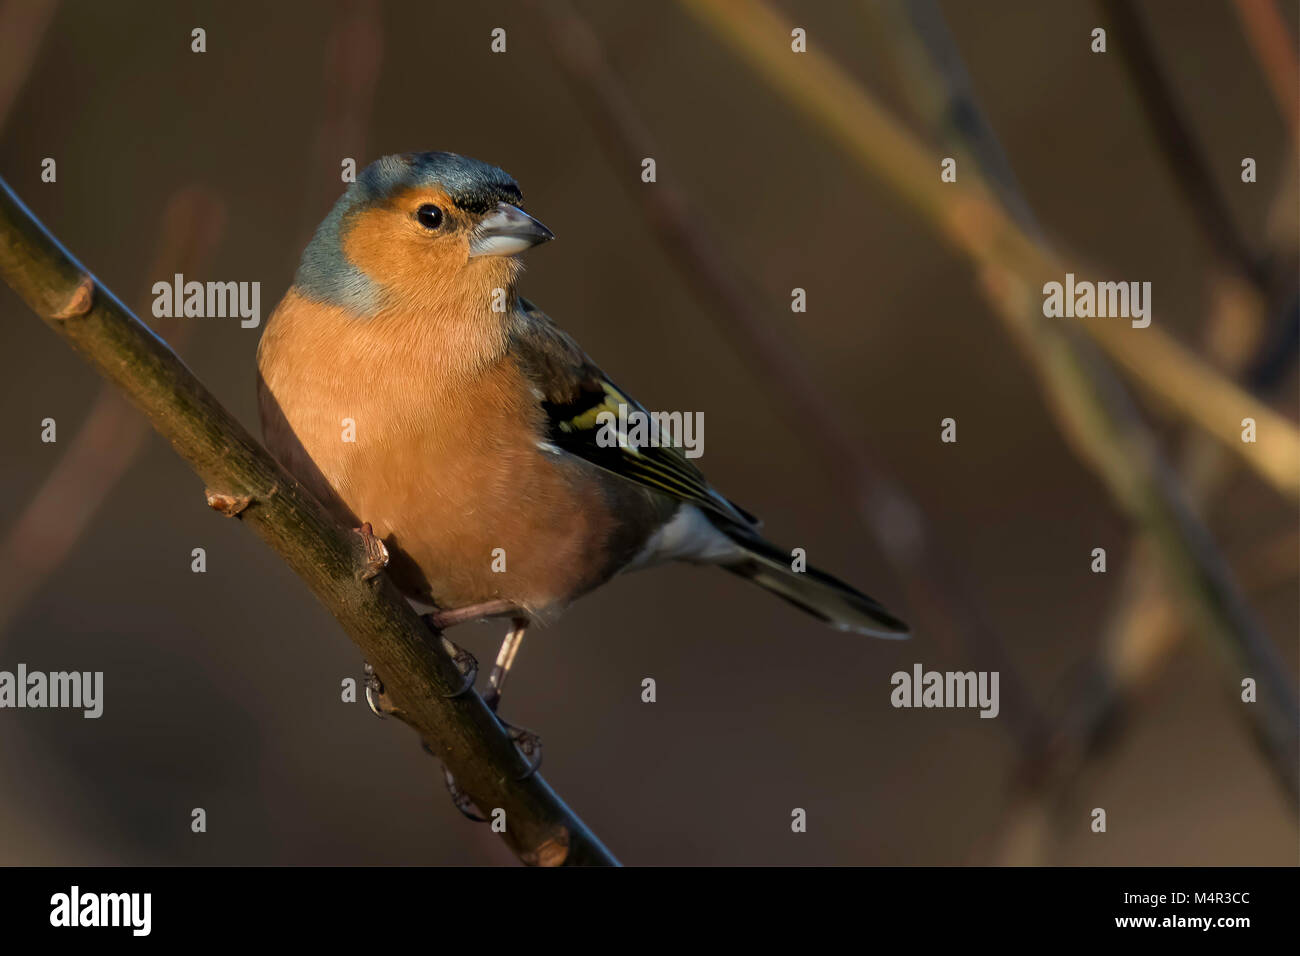 Male Chaffinch Perched looking to the Right - Stock Image